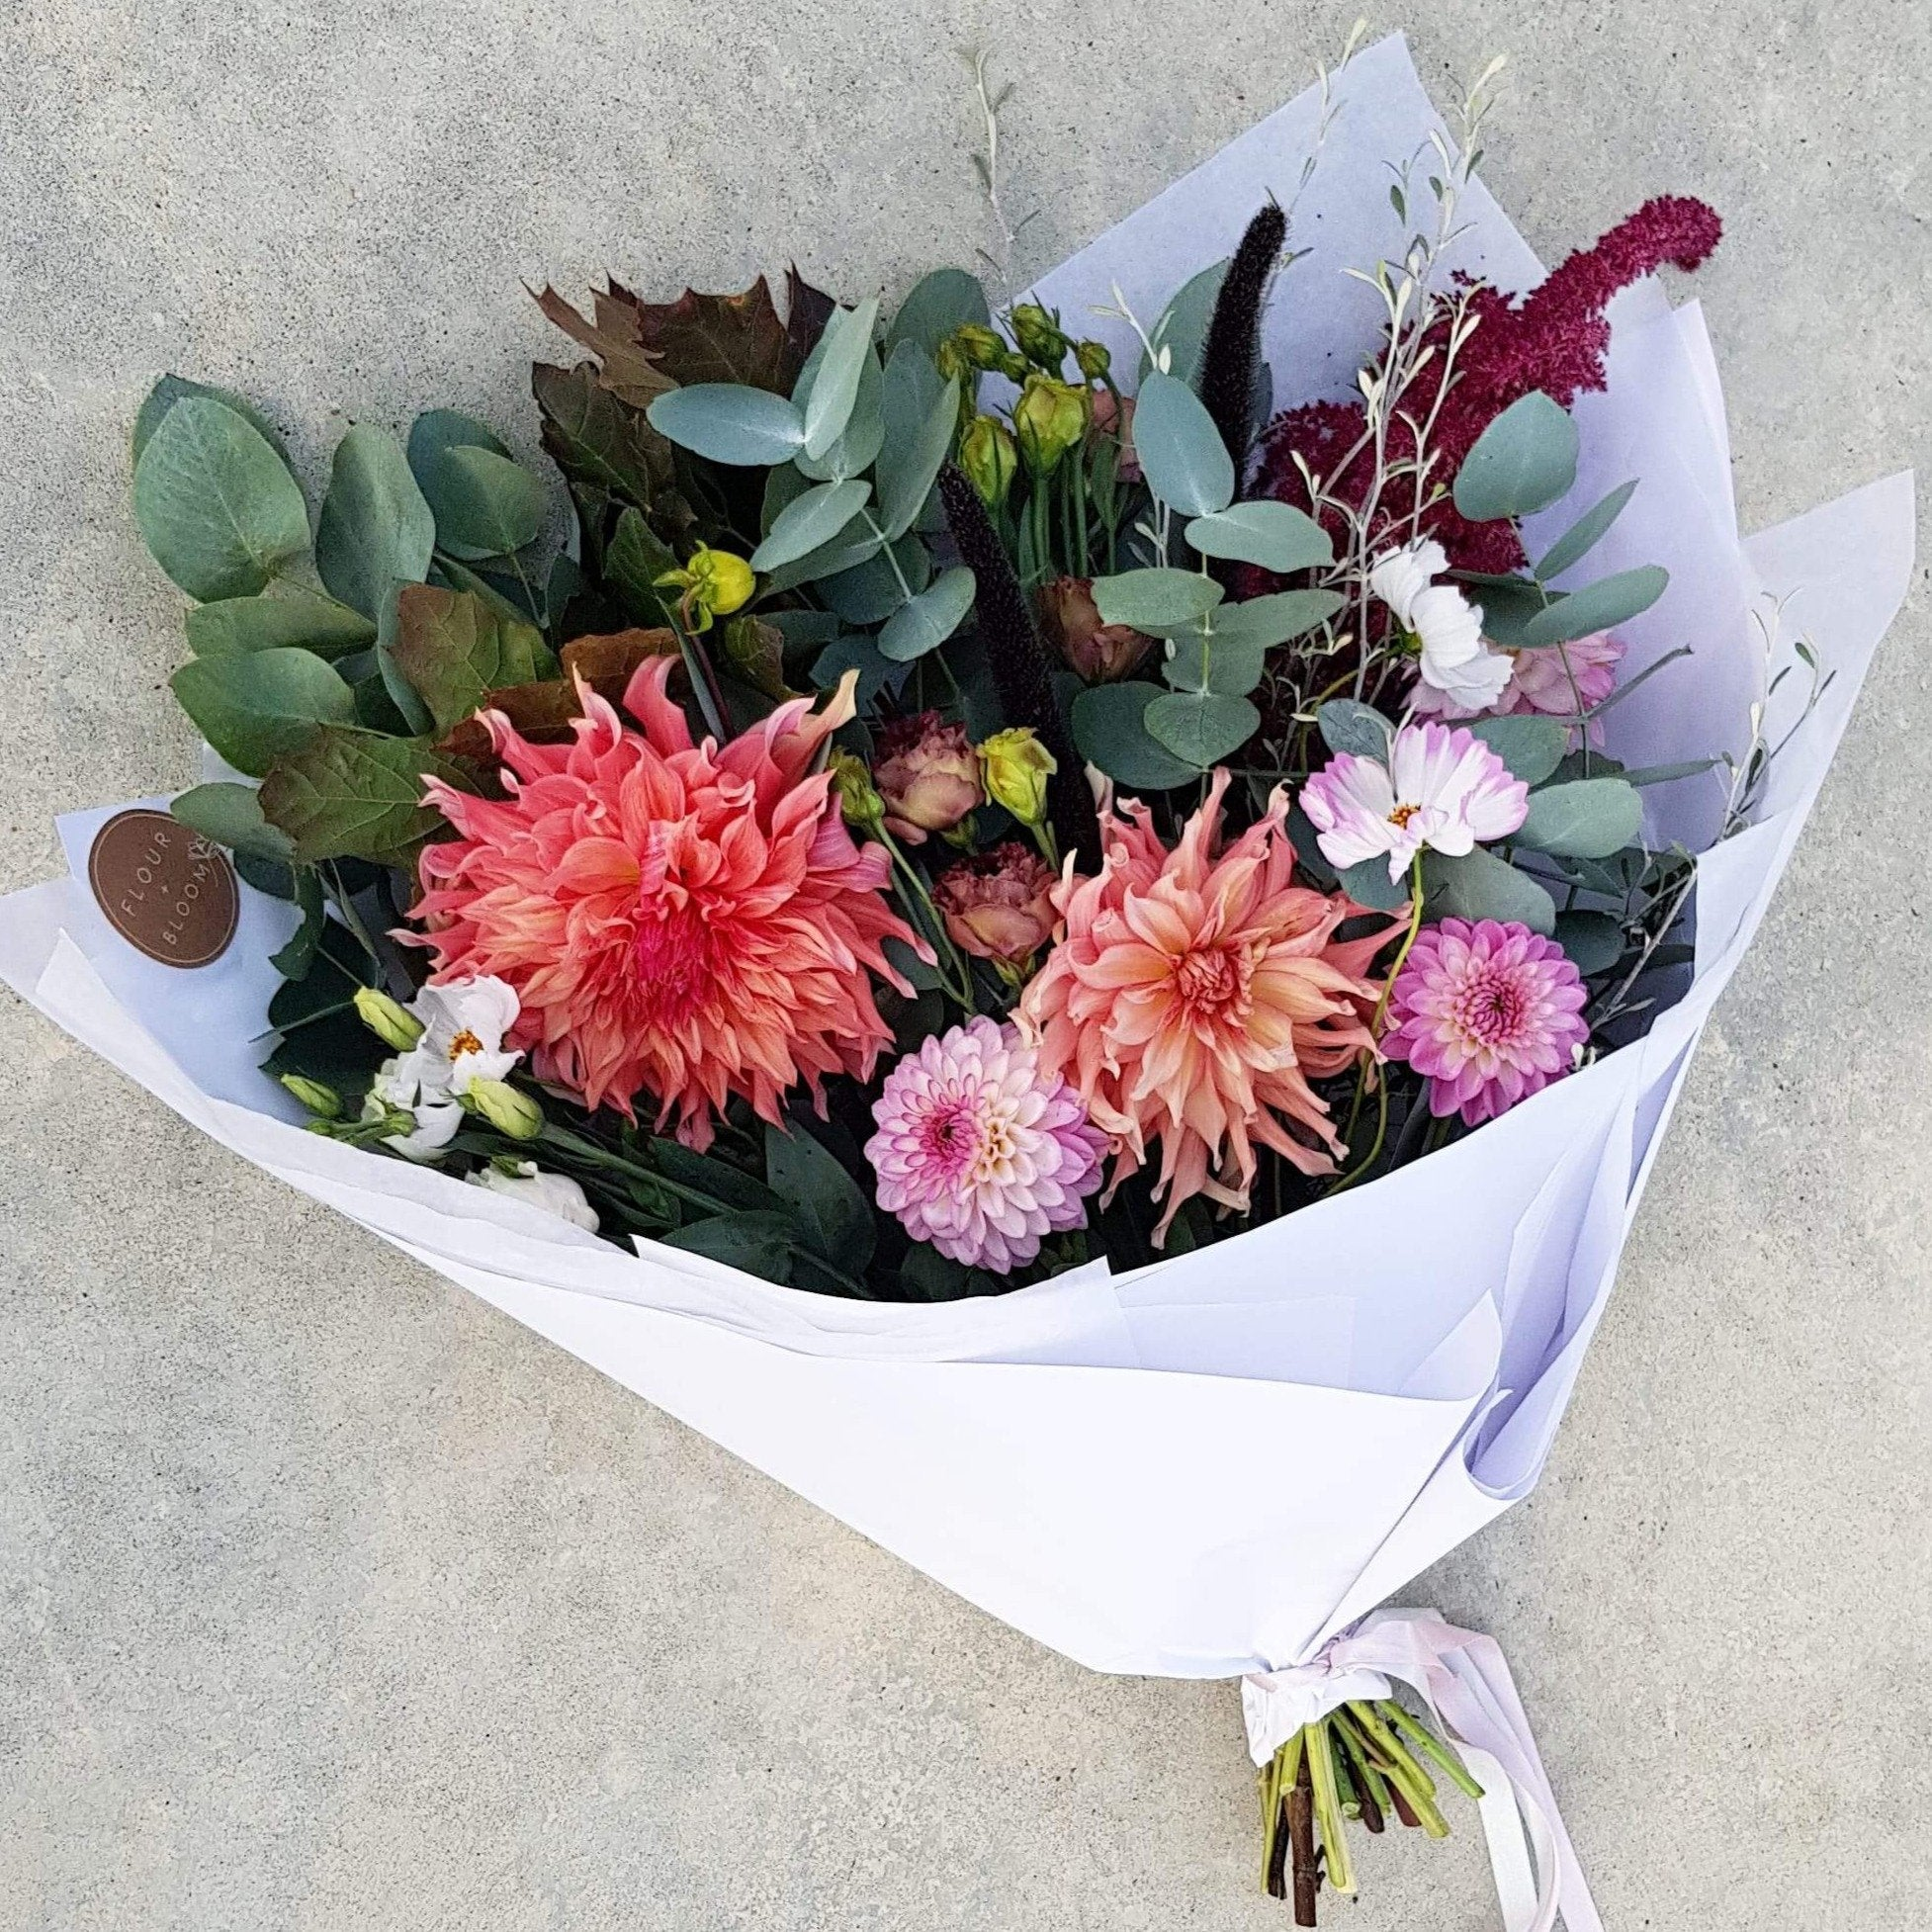 Fresh flowers from Waikato florist Flour + Bloom